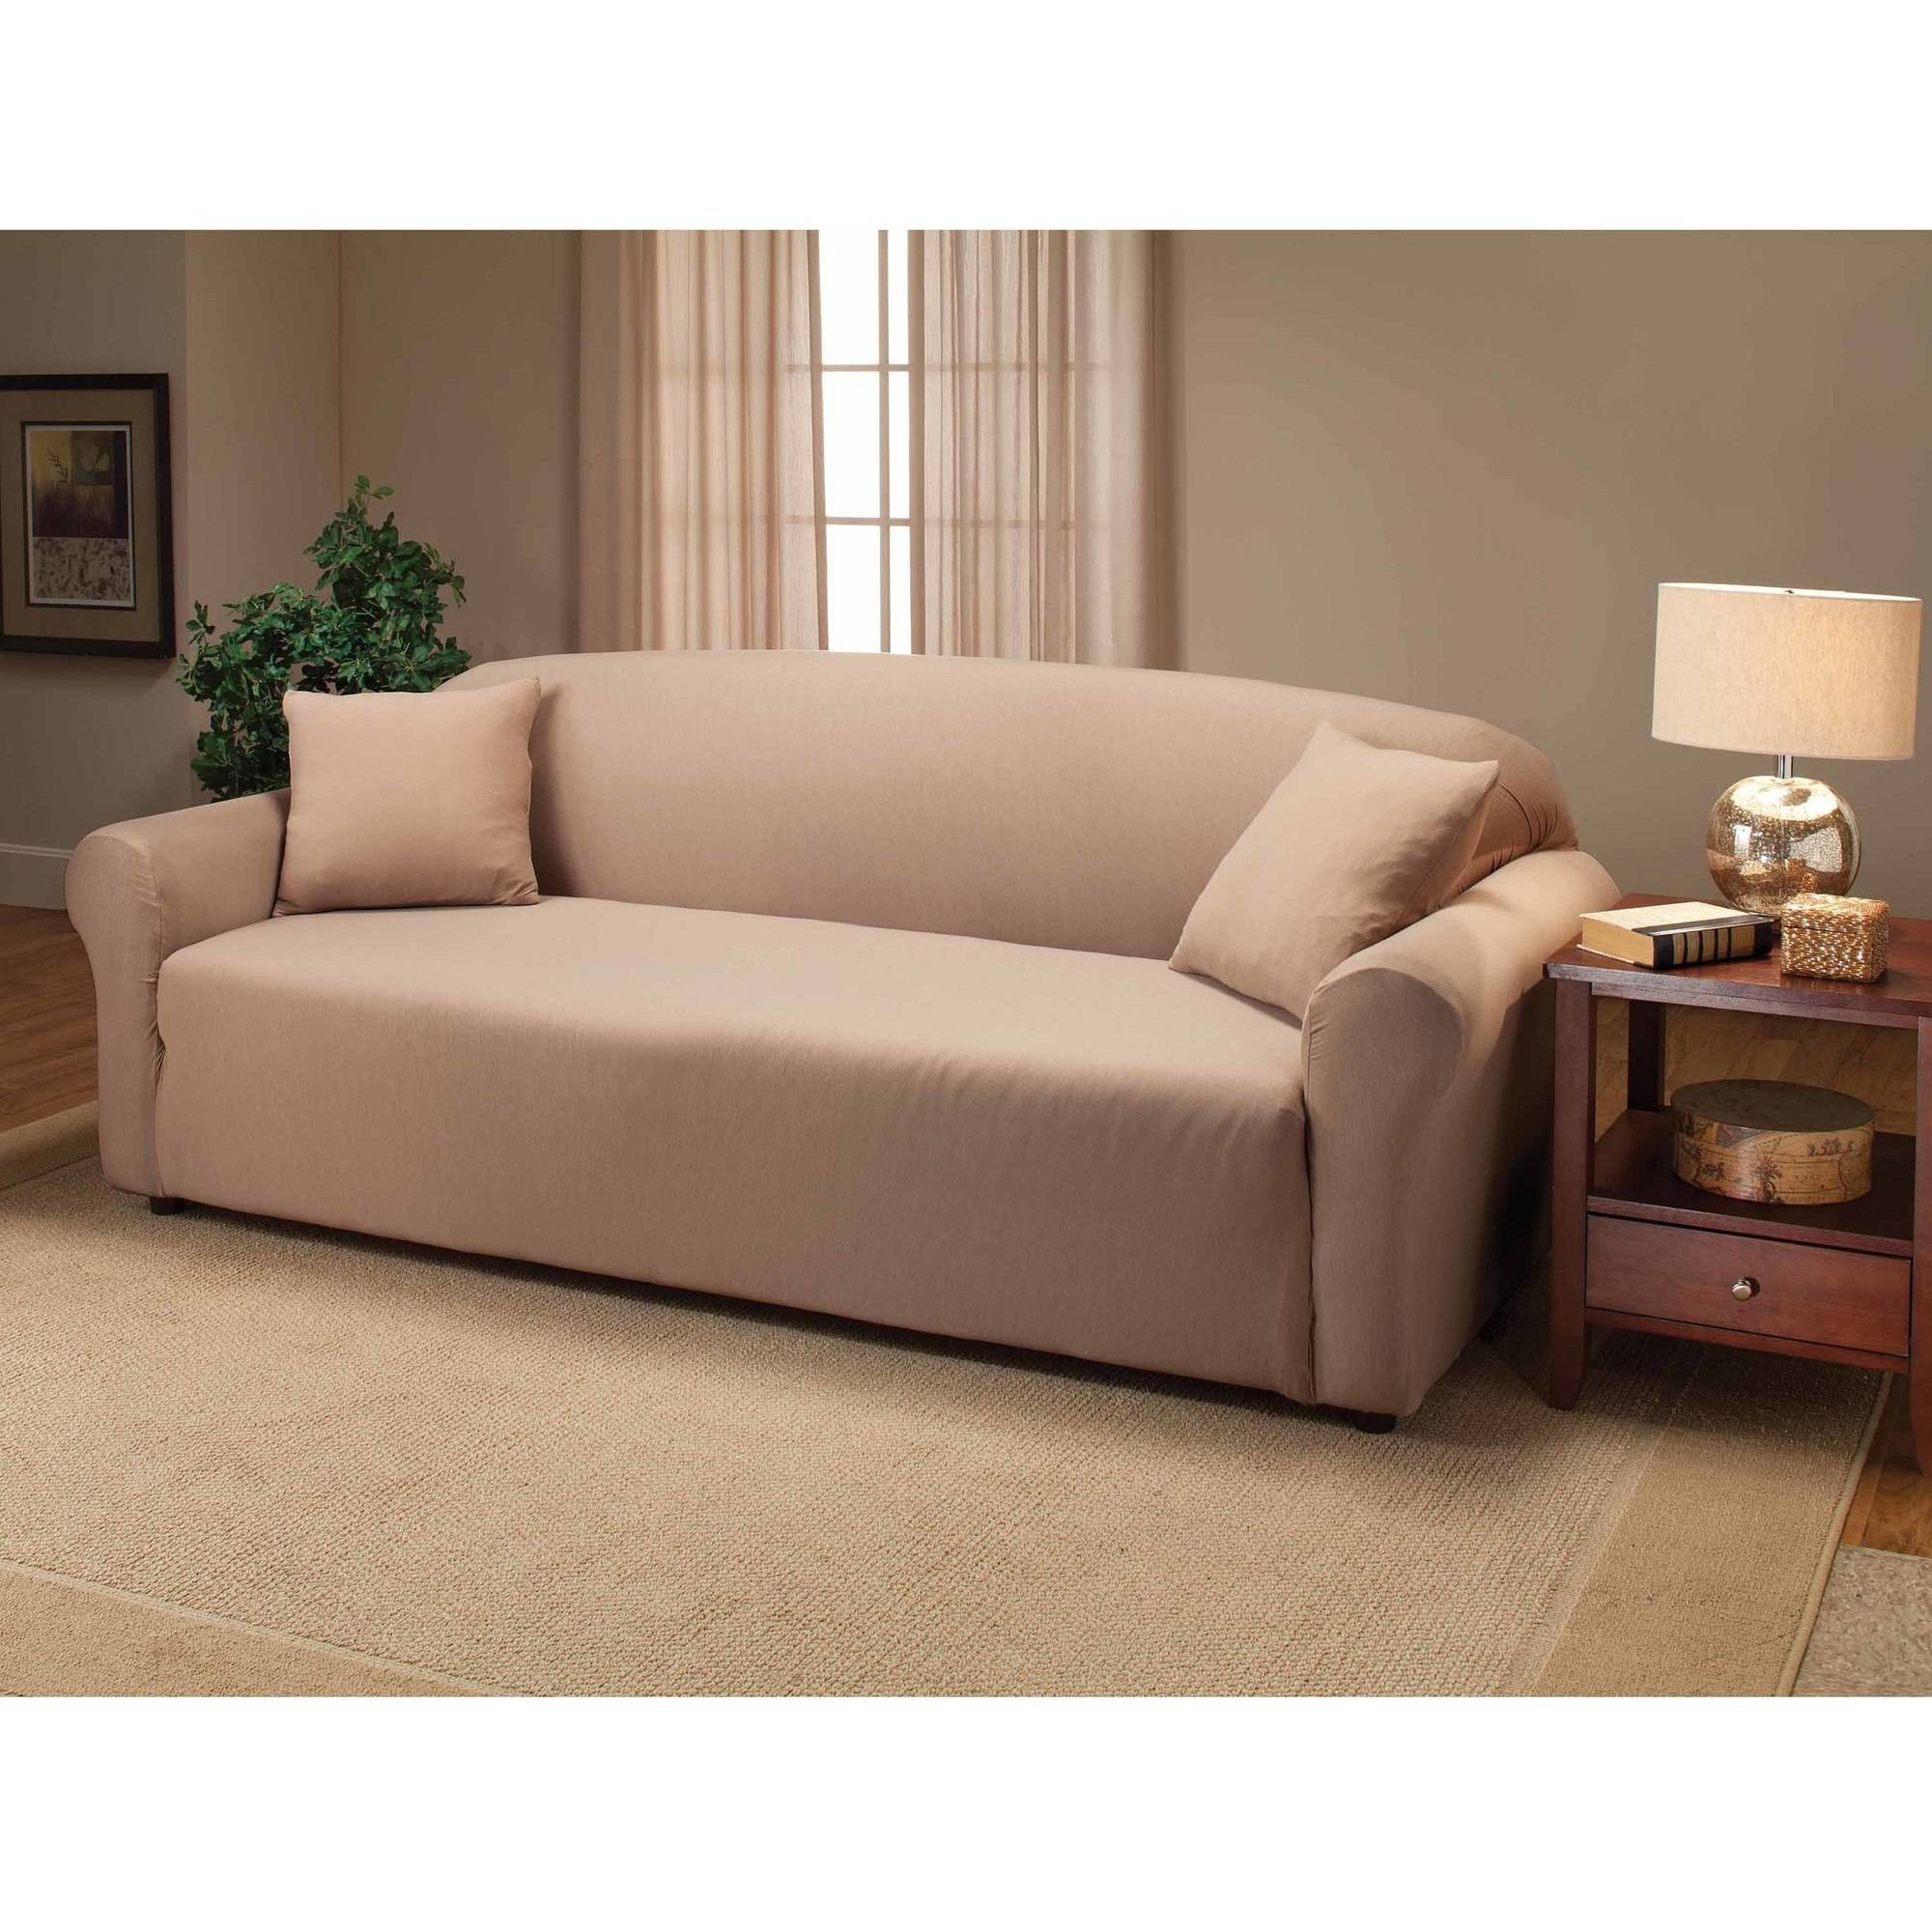 Jersey Stretch Sofa Slipcover Walmartcom